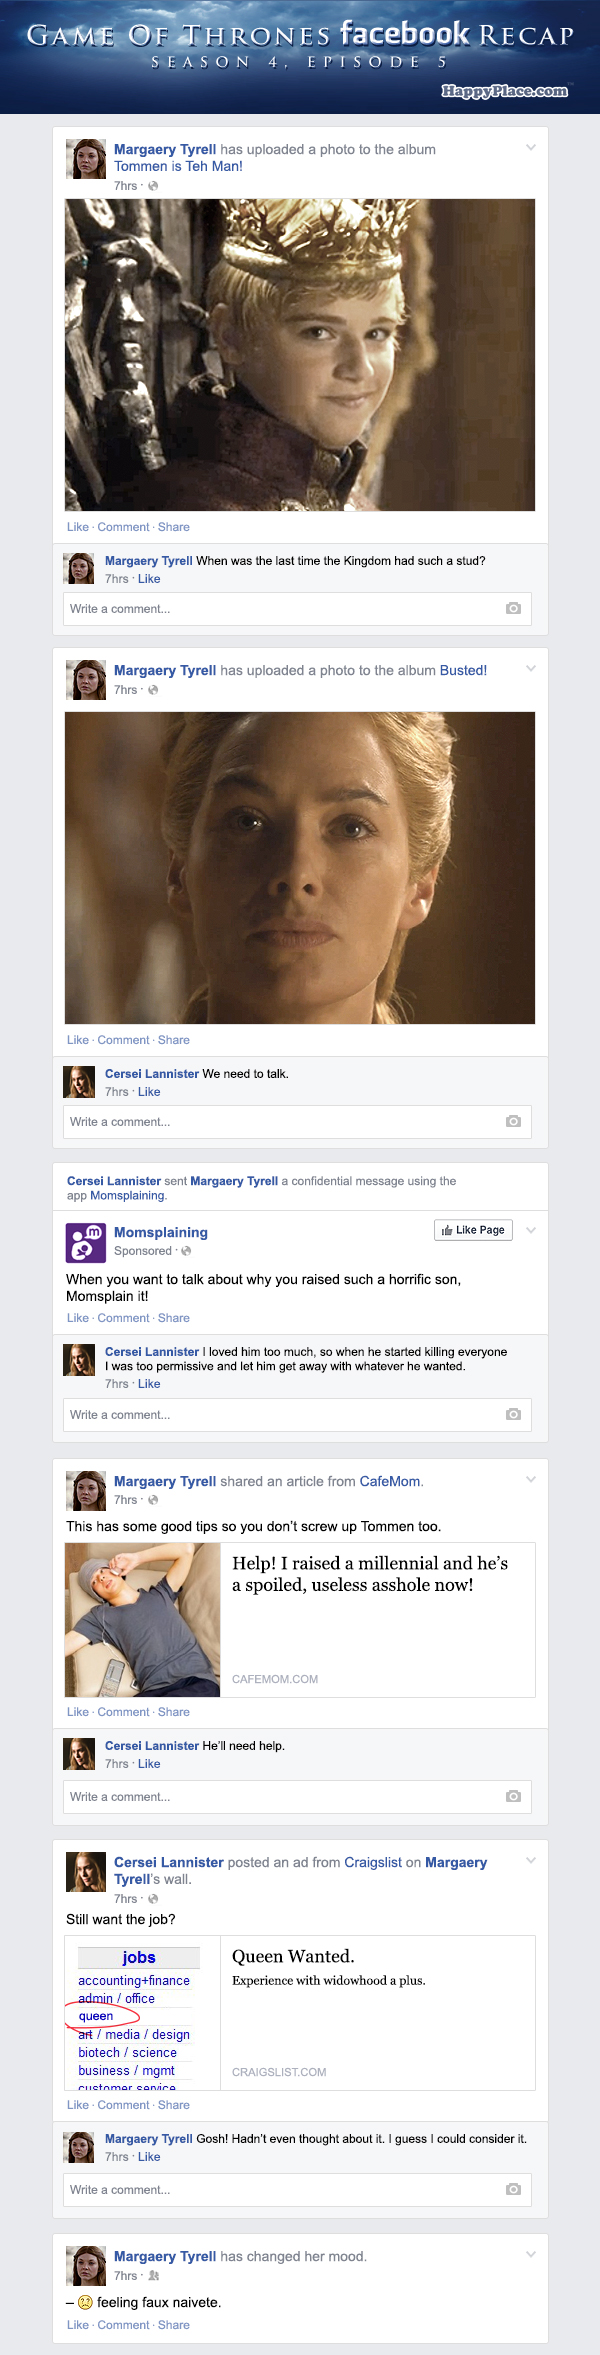 If Game of Thrones took place entirely on Facebook - Season 4, Episode 5.